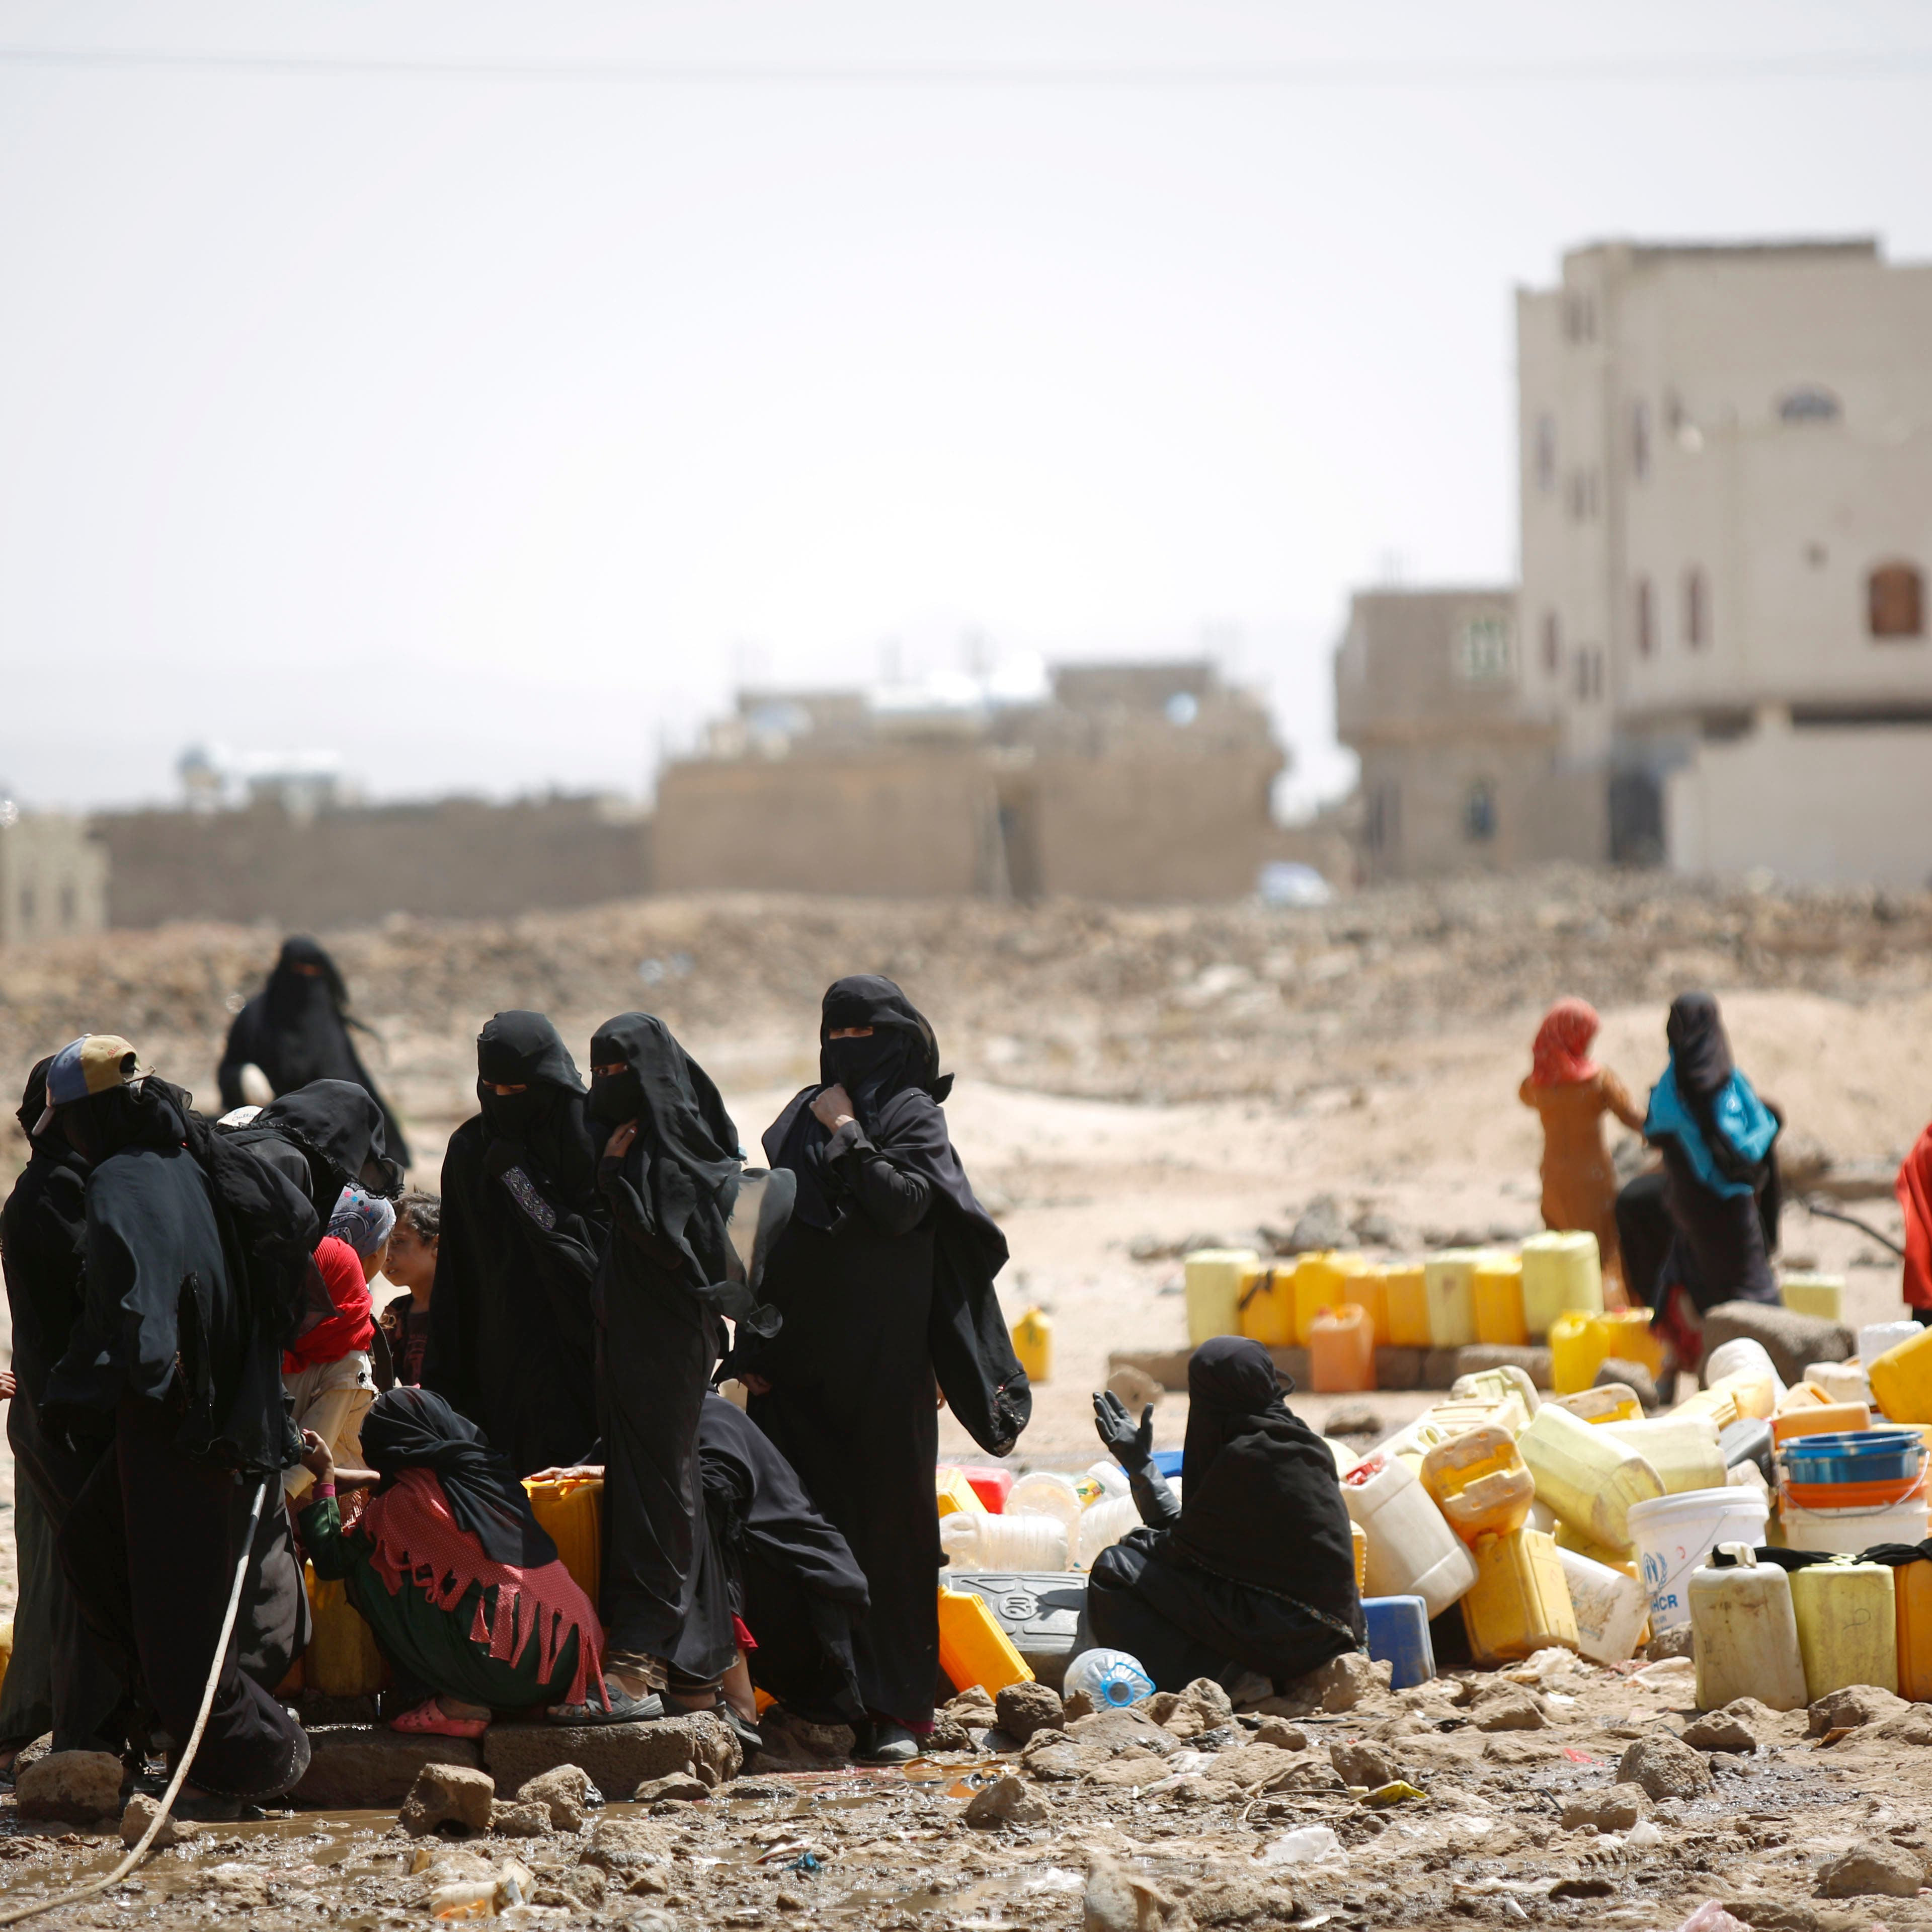 Yemeni group: Houthi rebels hold, torture female detainees